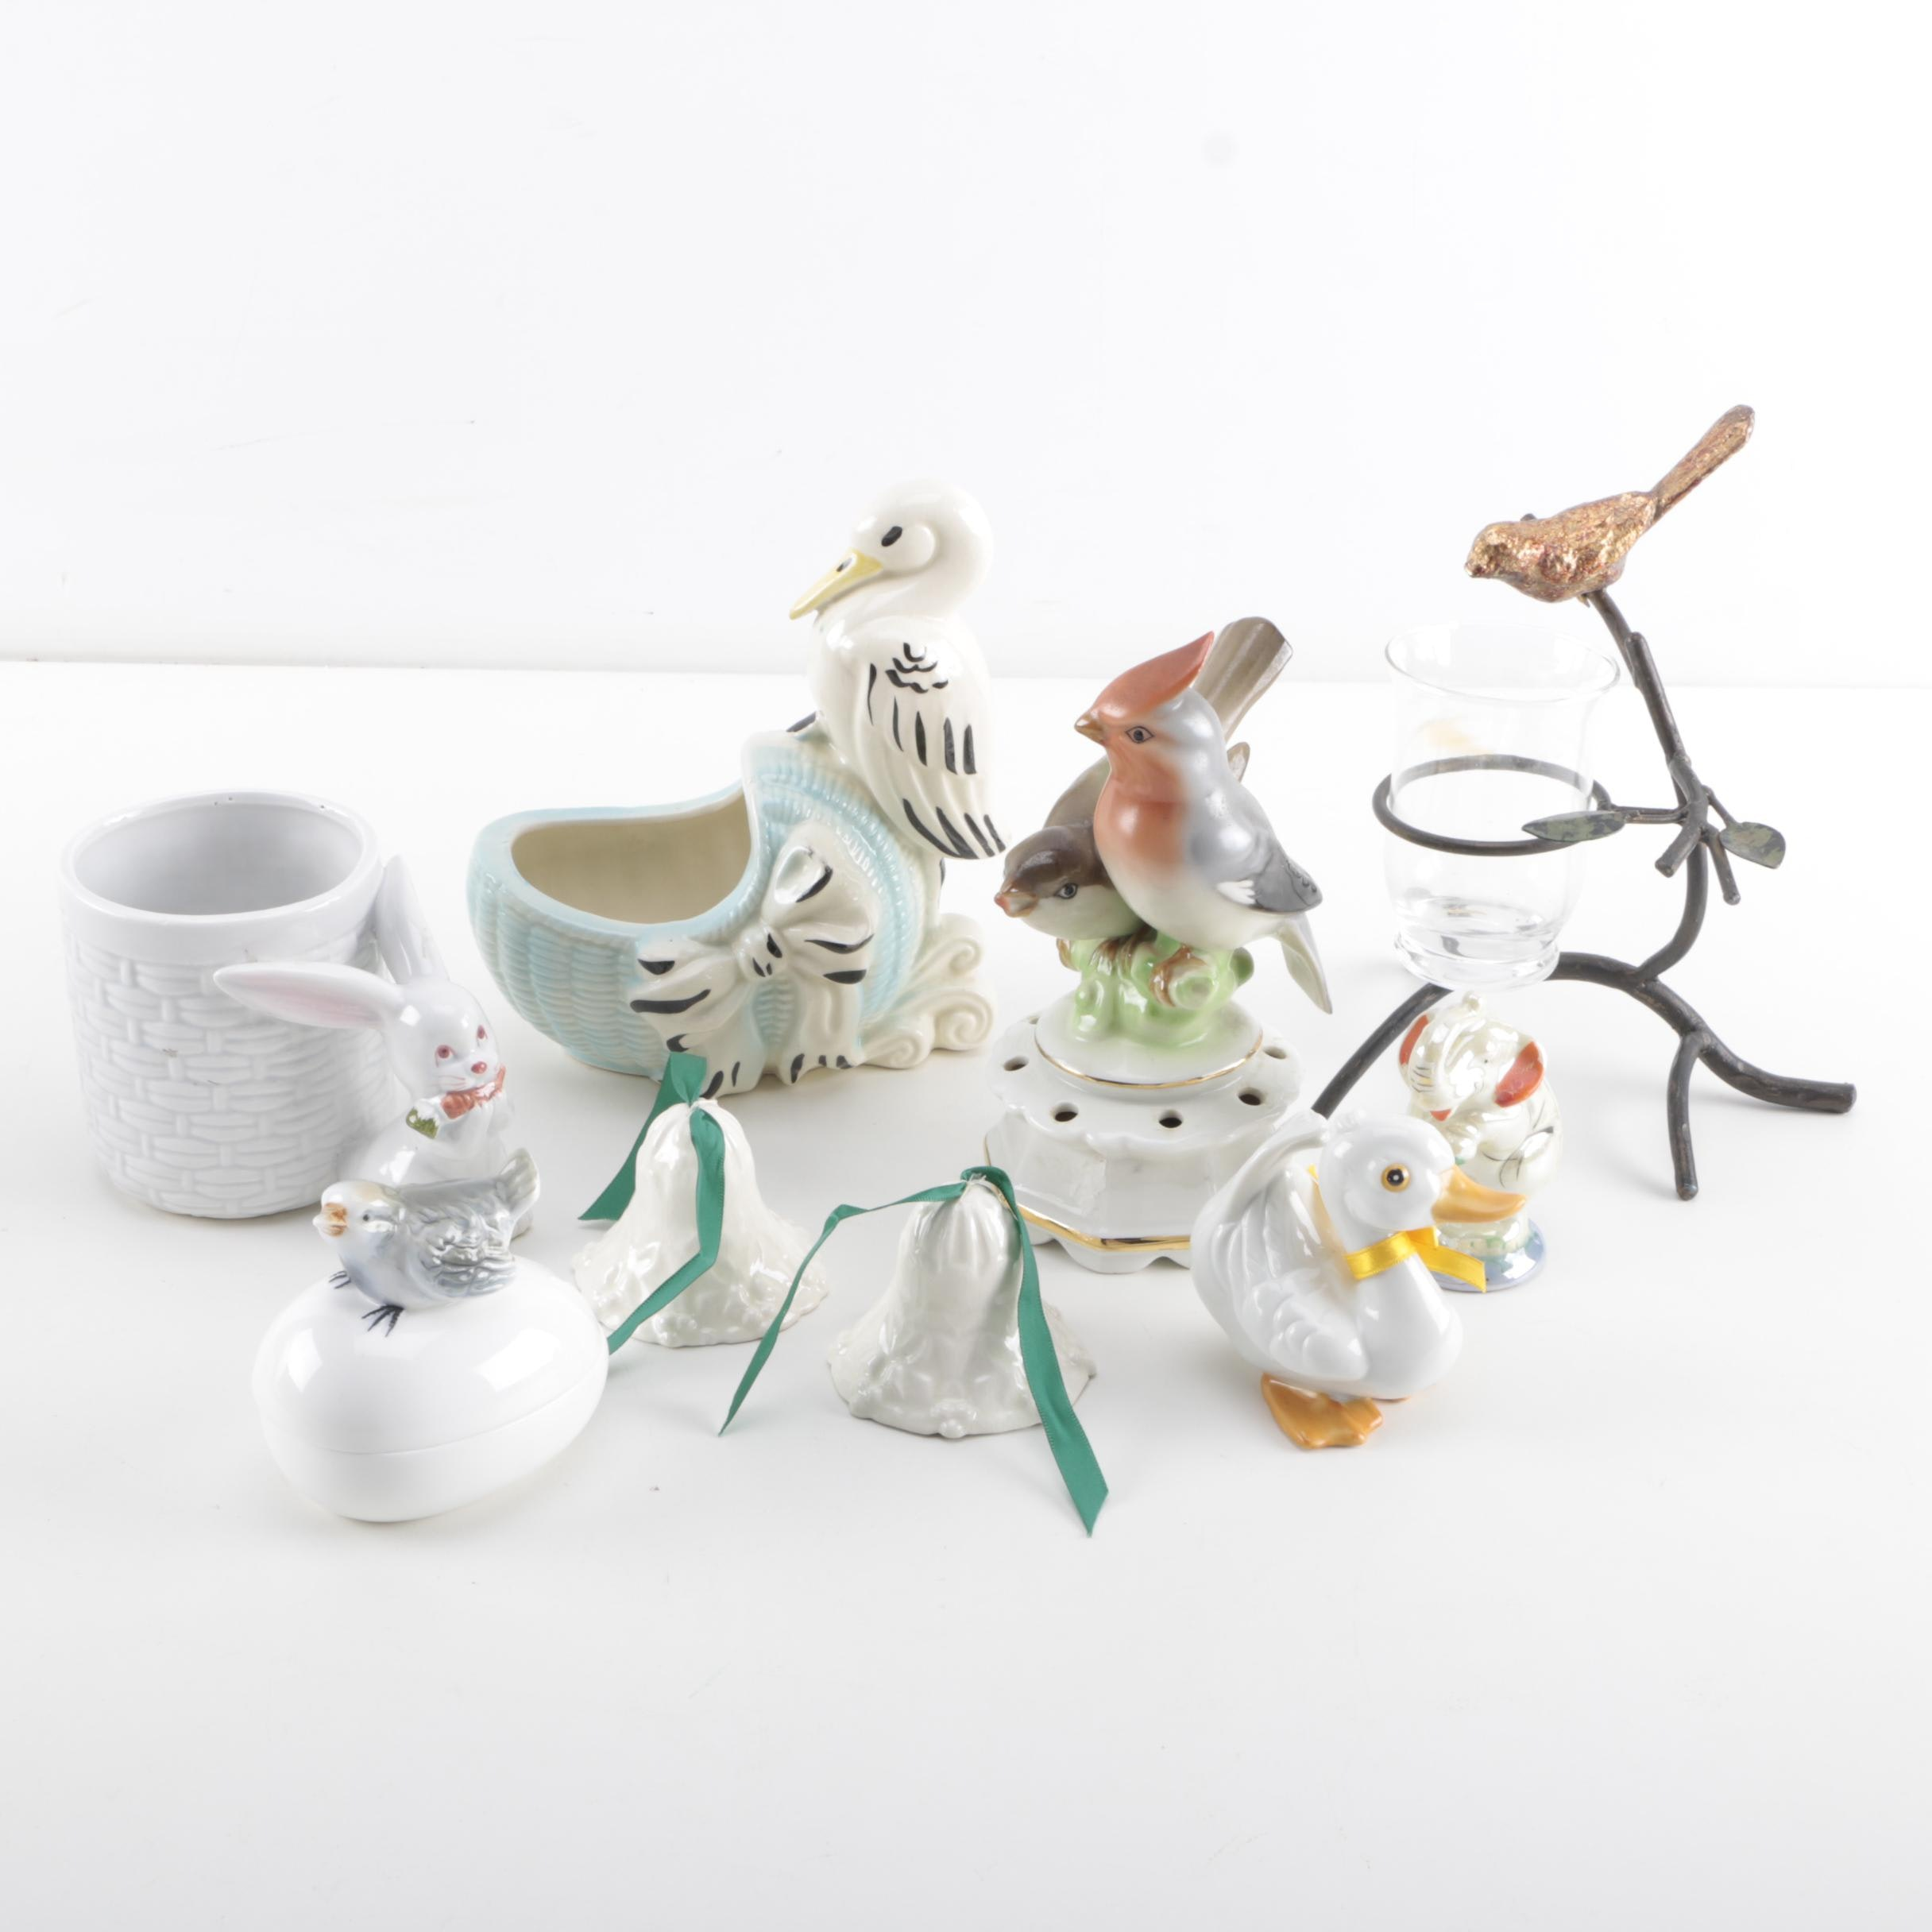 Assortment of Ceramic Animal Figurines Including Fitz and Floyd and More